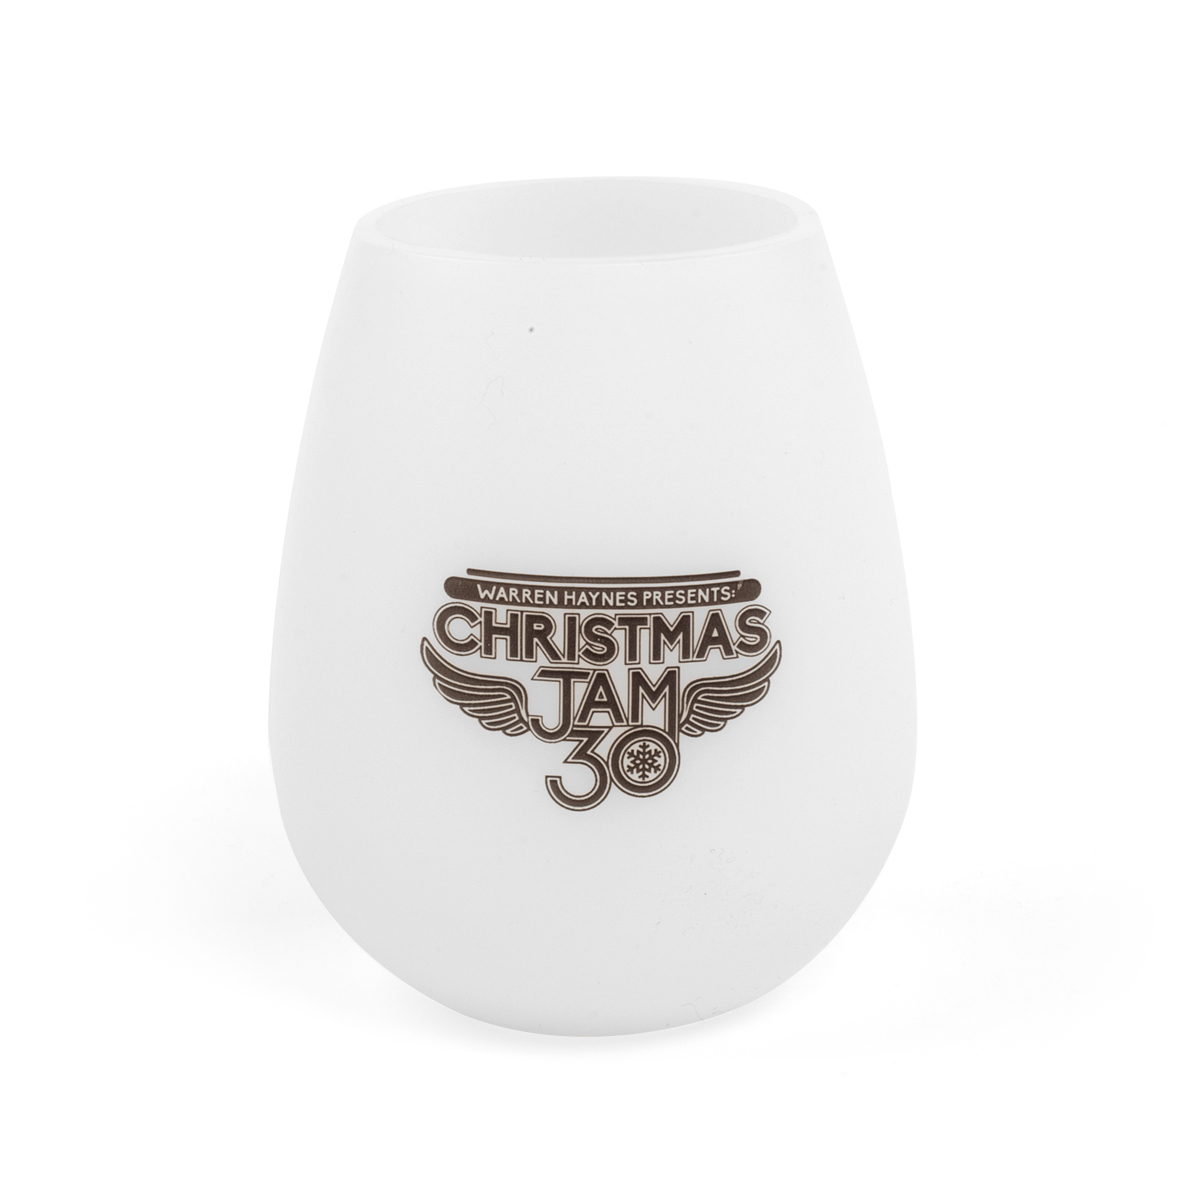 2018 Christmas Jam Squishy Silicone Wine Glass